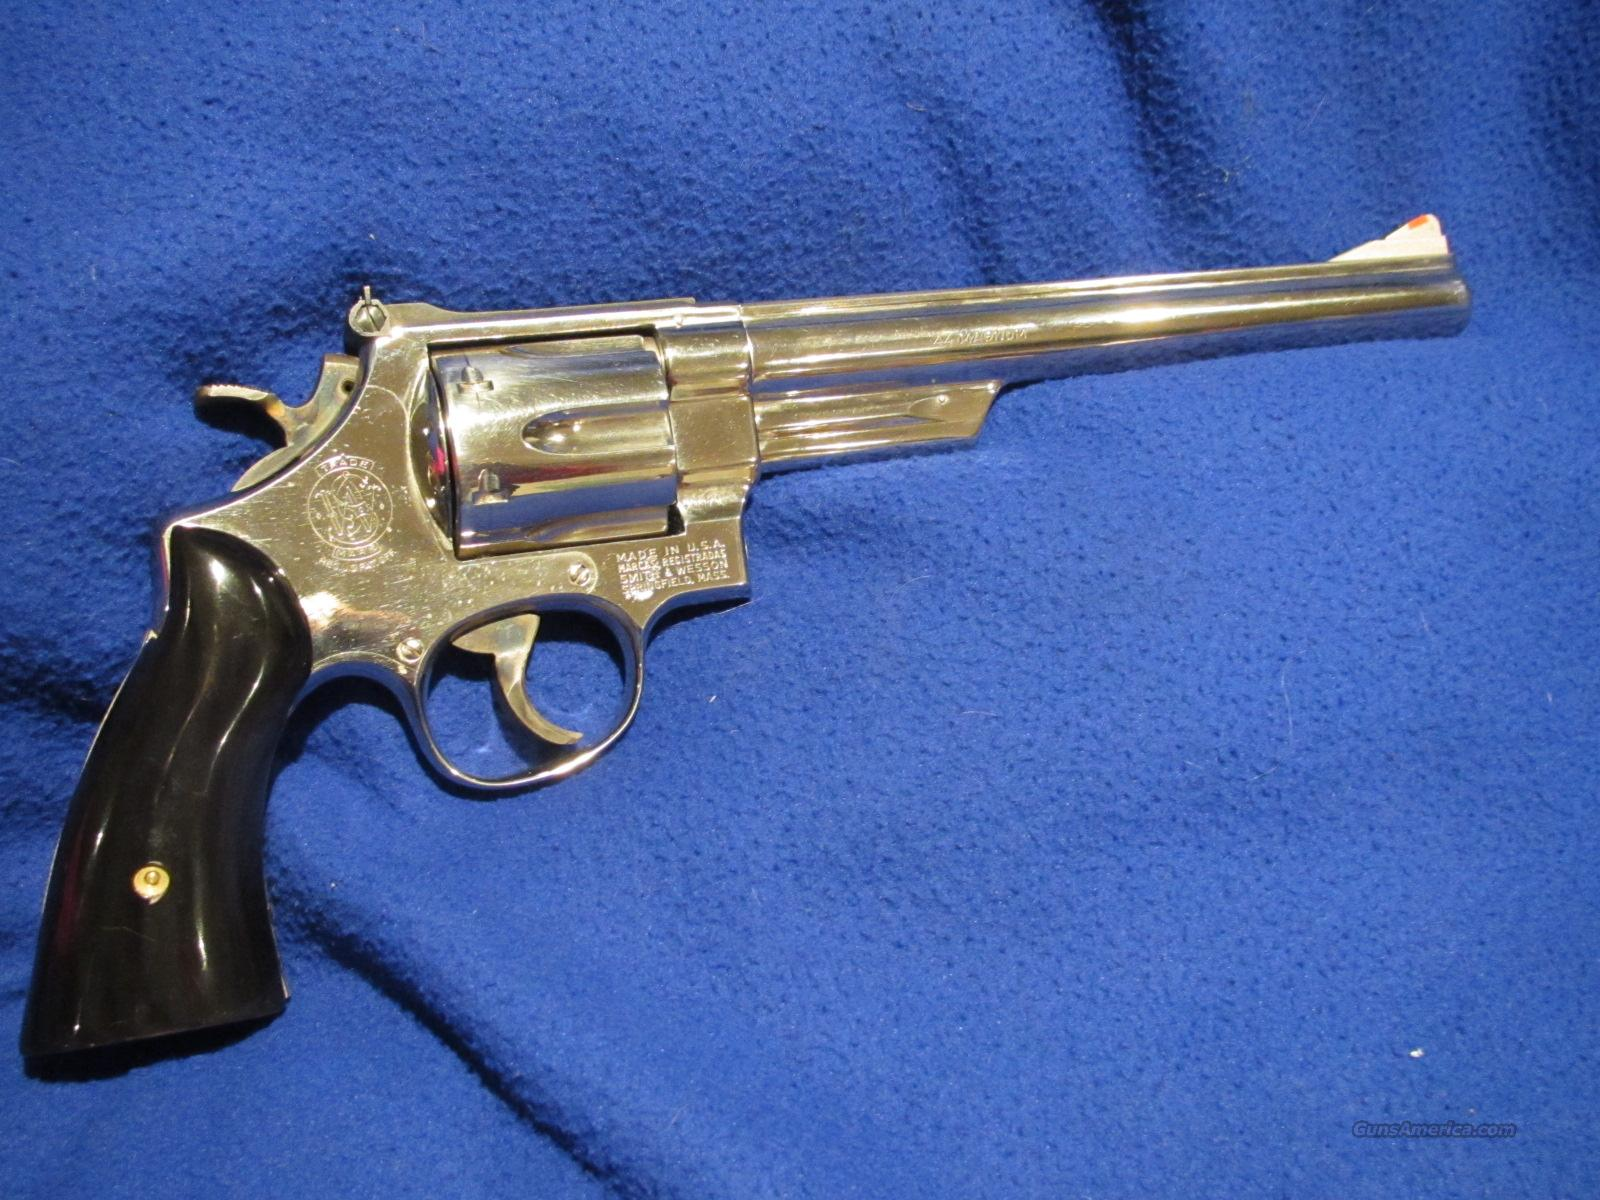 Smith And Wesson 29-2 Nickel  8 3/8  Guns > Pistols > Smith & Wesson Revolvers > Full Frame Revolver